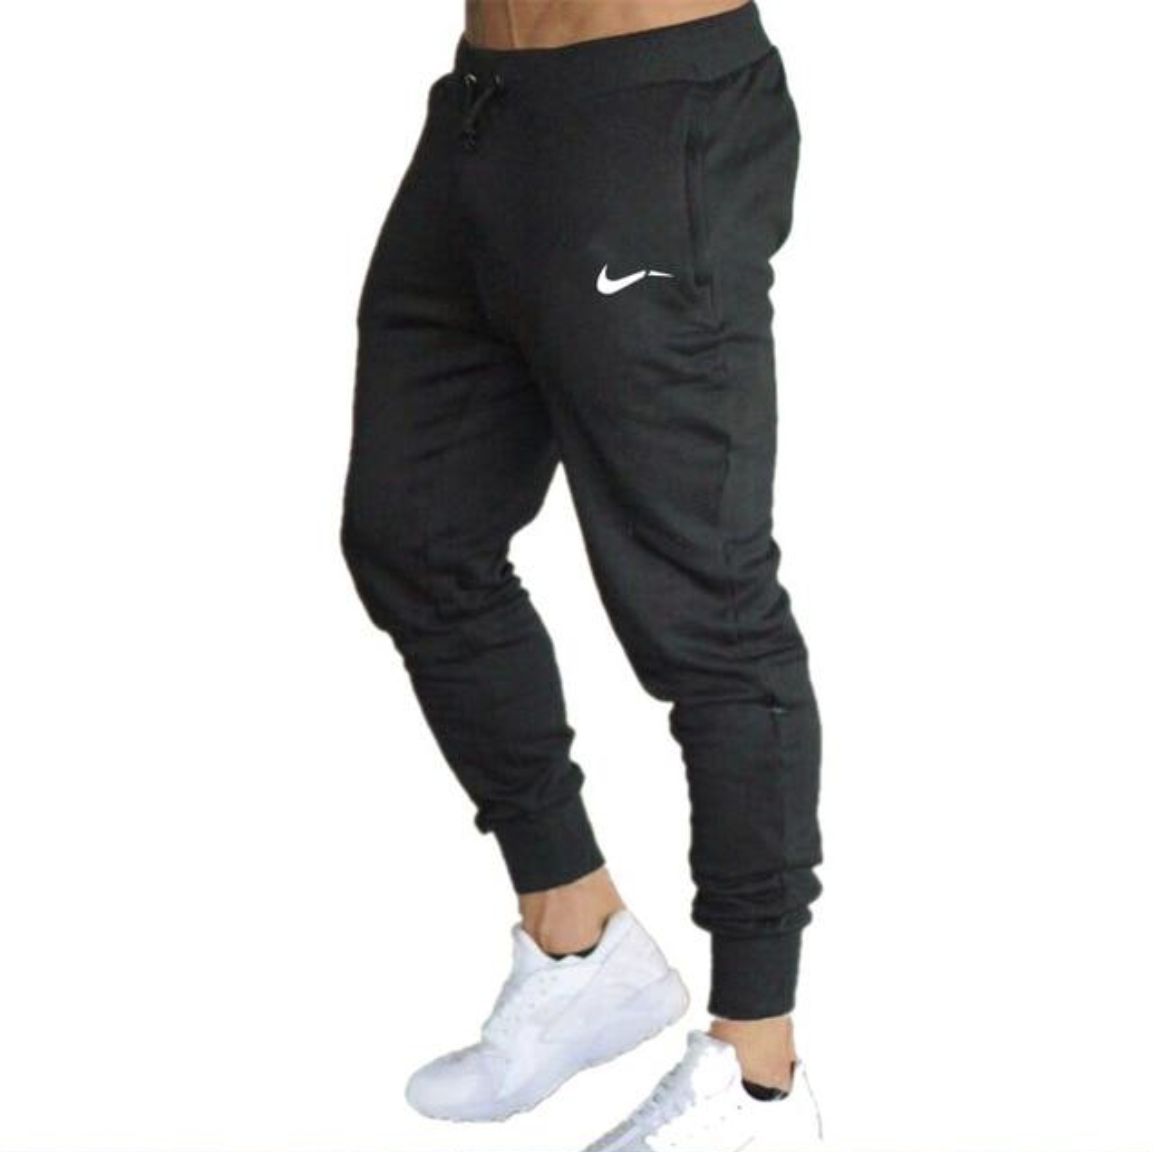 PERFORMANCE TECH JOGGER | BLACK